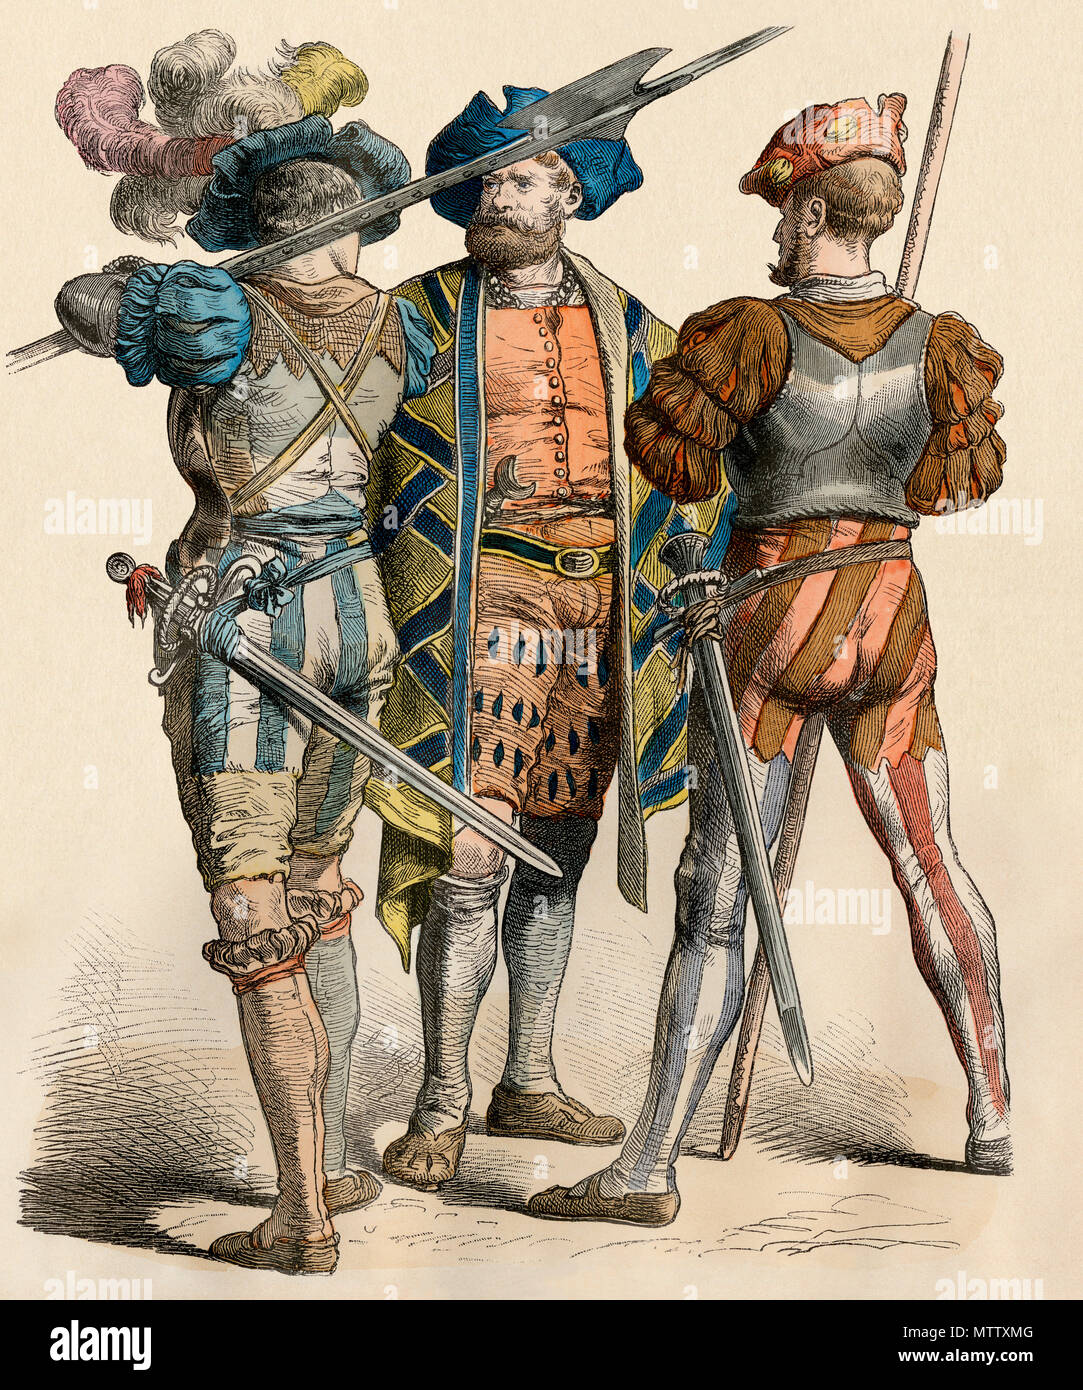 German country squire with his armed attendants, 1500s. Hand-colored print - Stock Image